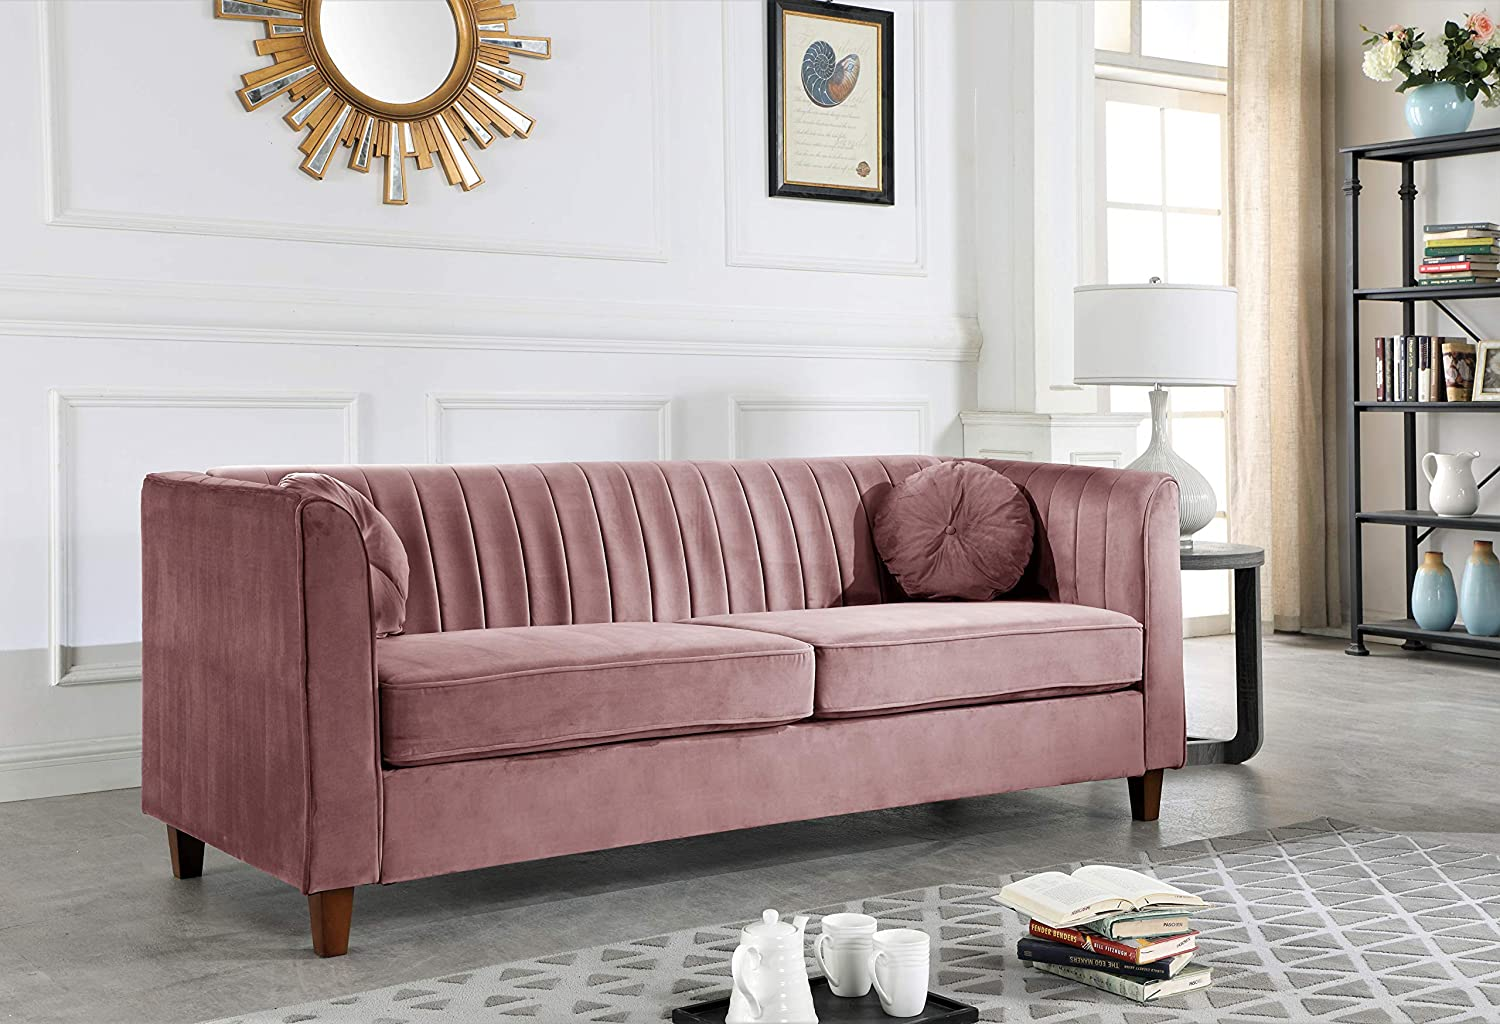 Container Furniture Direct Arvilla Upholstered Chesterfield Sofa, Rose